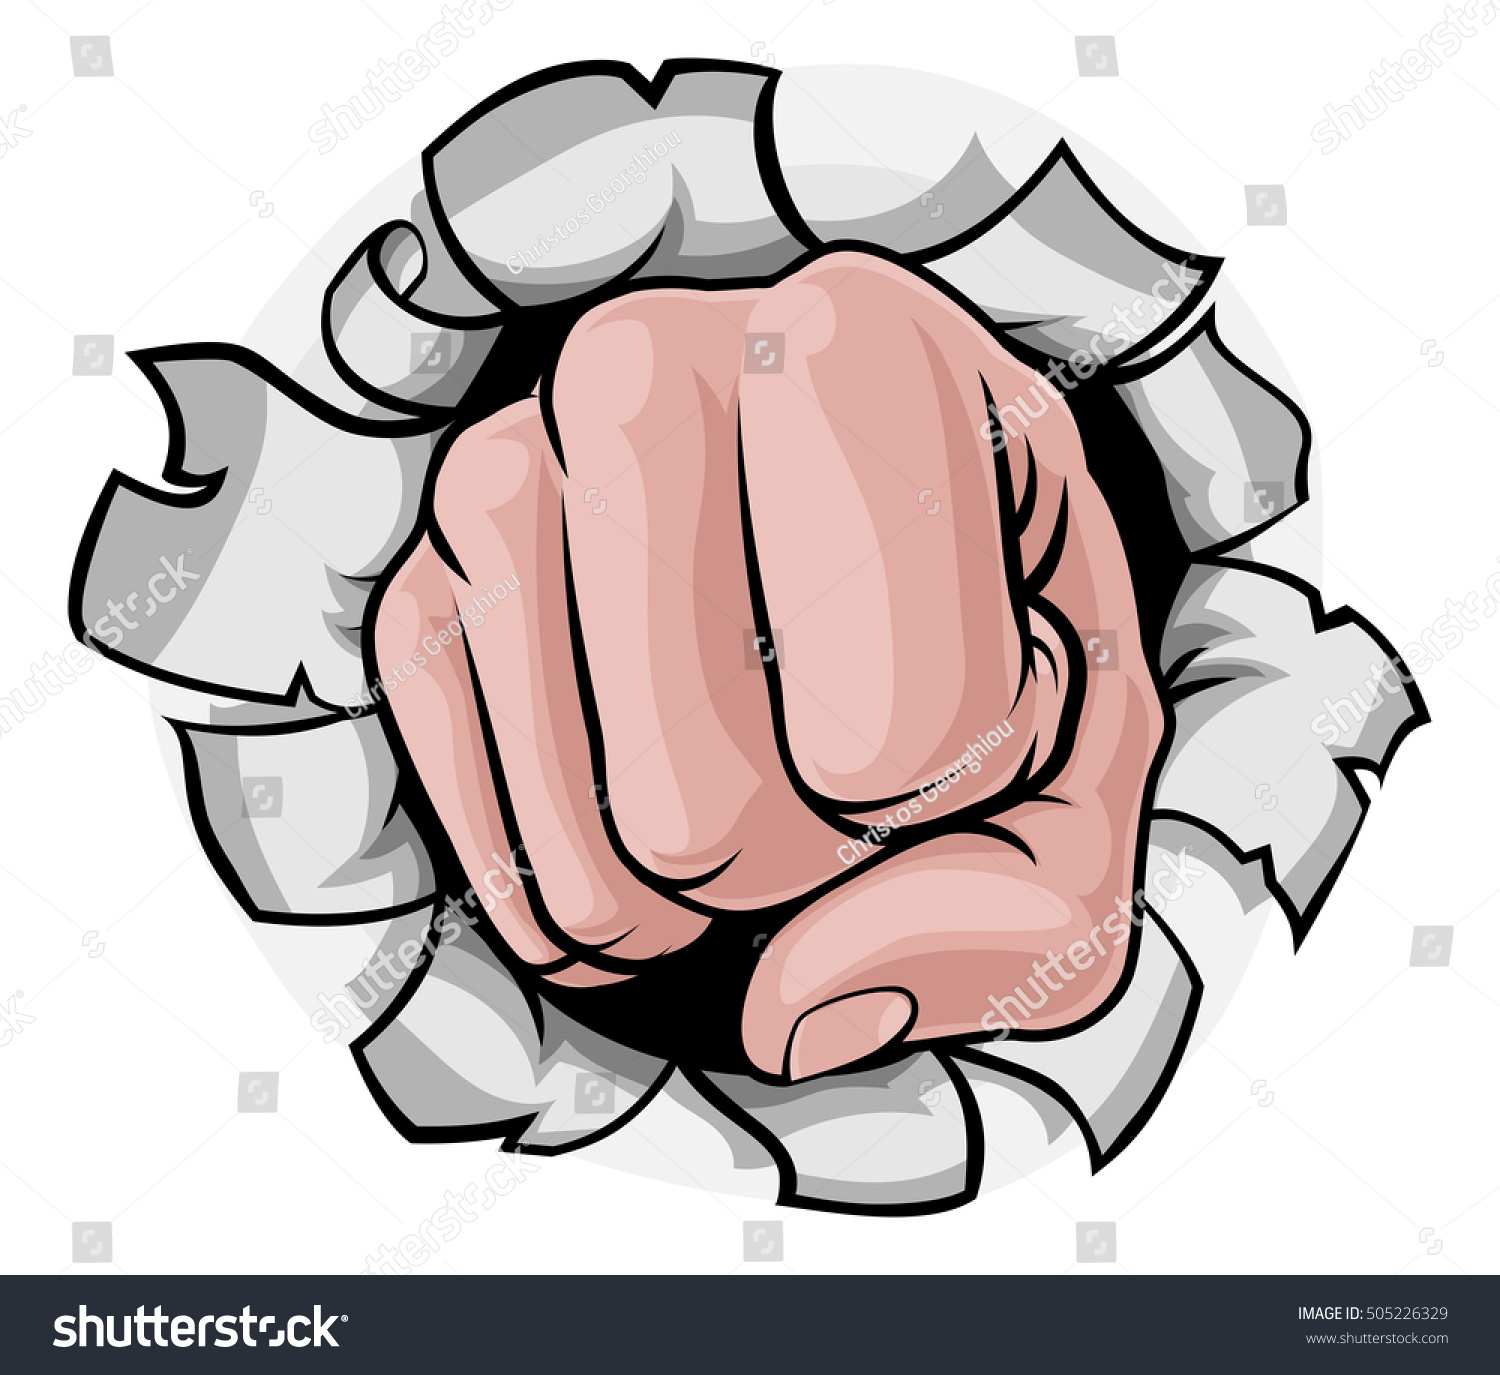 Cartoon Hand Fist Punching Knuckles Front Stock Illustration ...